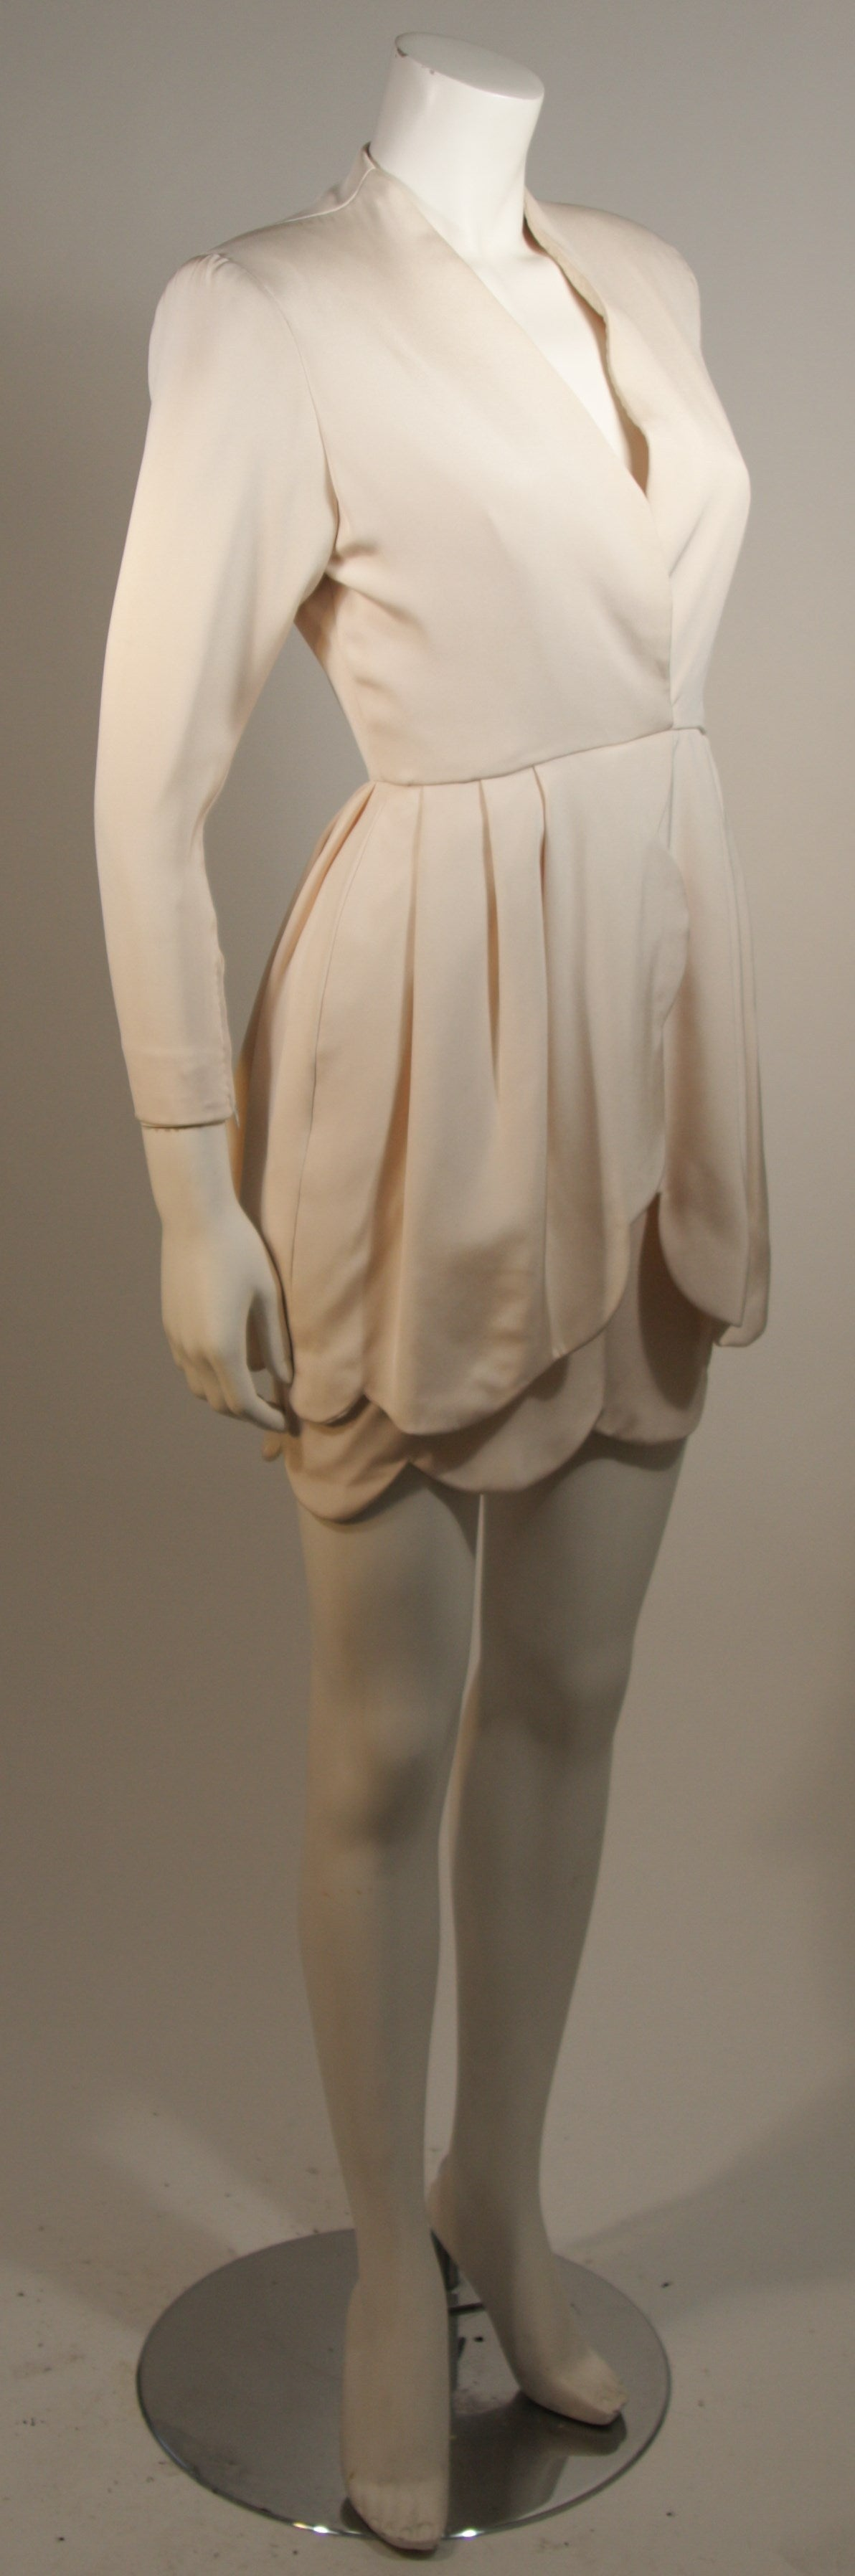 Beige Attributed to Valentino Scallop Edge Cocktail Dress Size Small For Sale